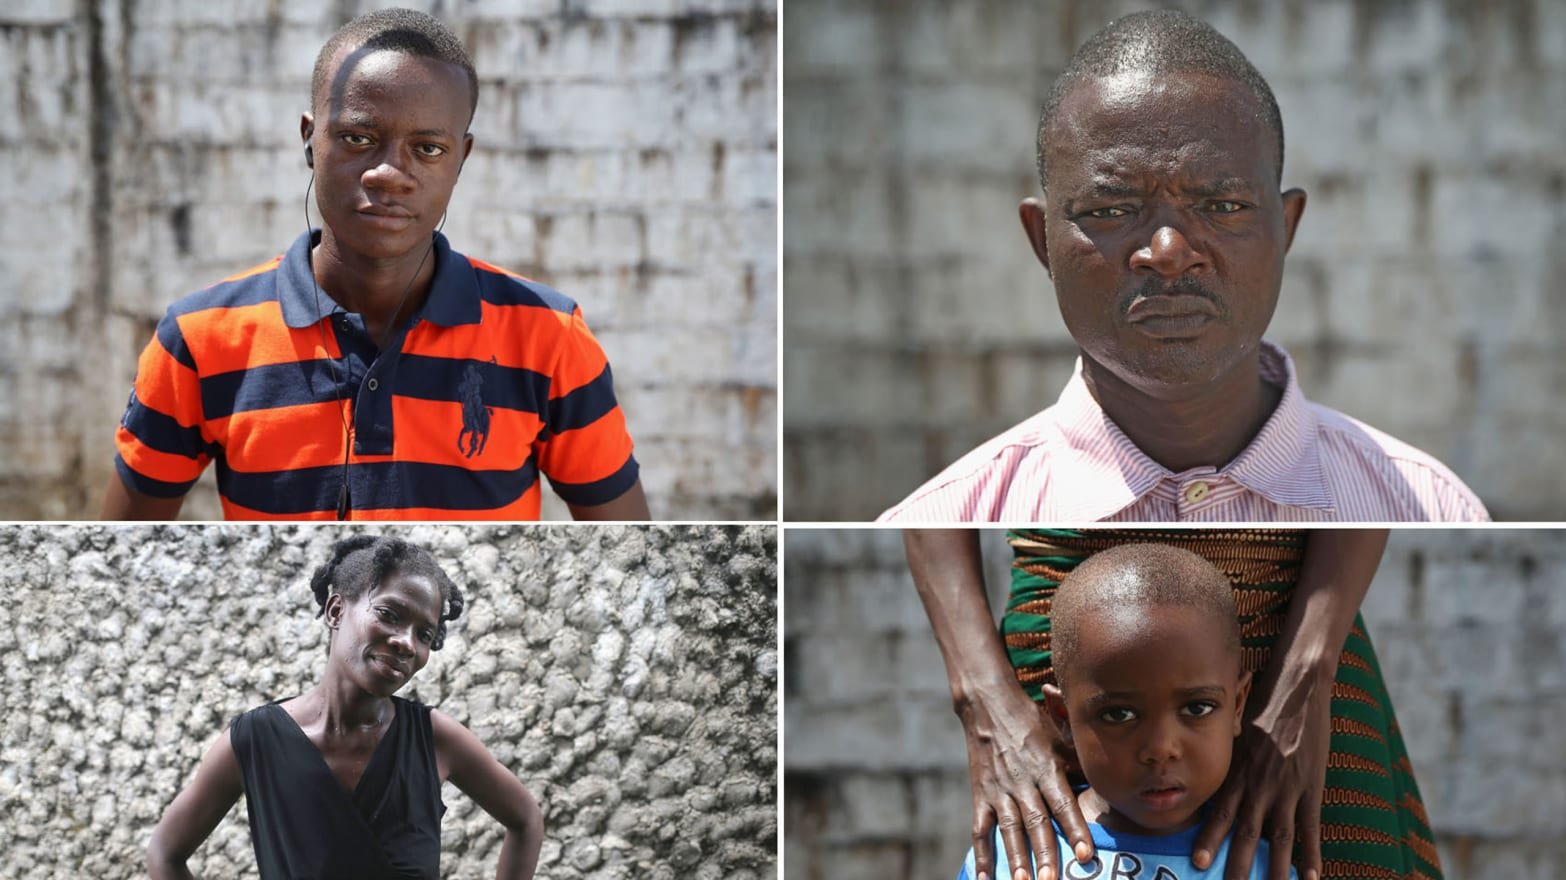 This Man Lost 35 Relatives to Ebola and His Community Wants Him Gone